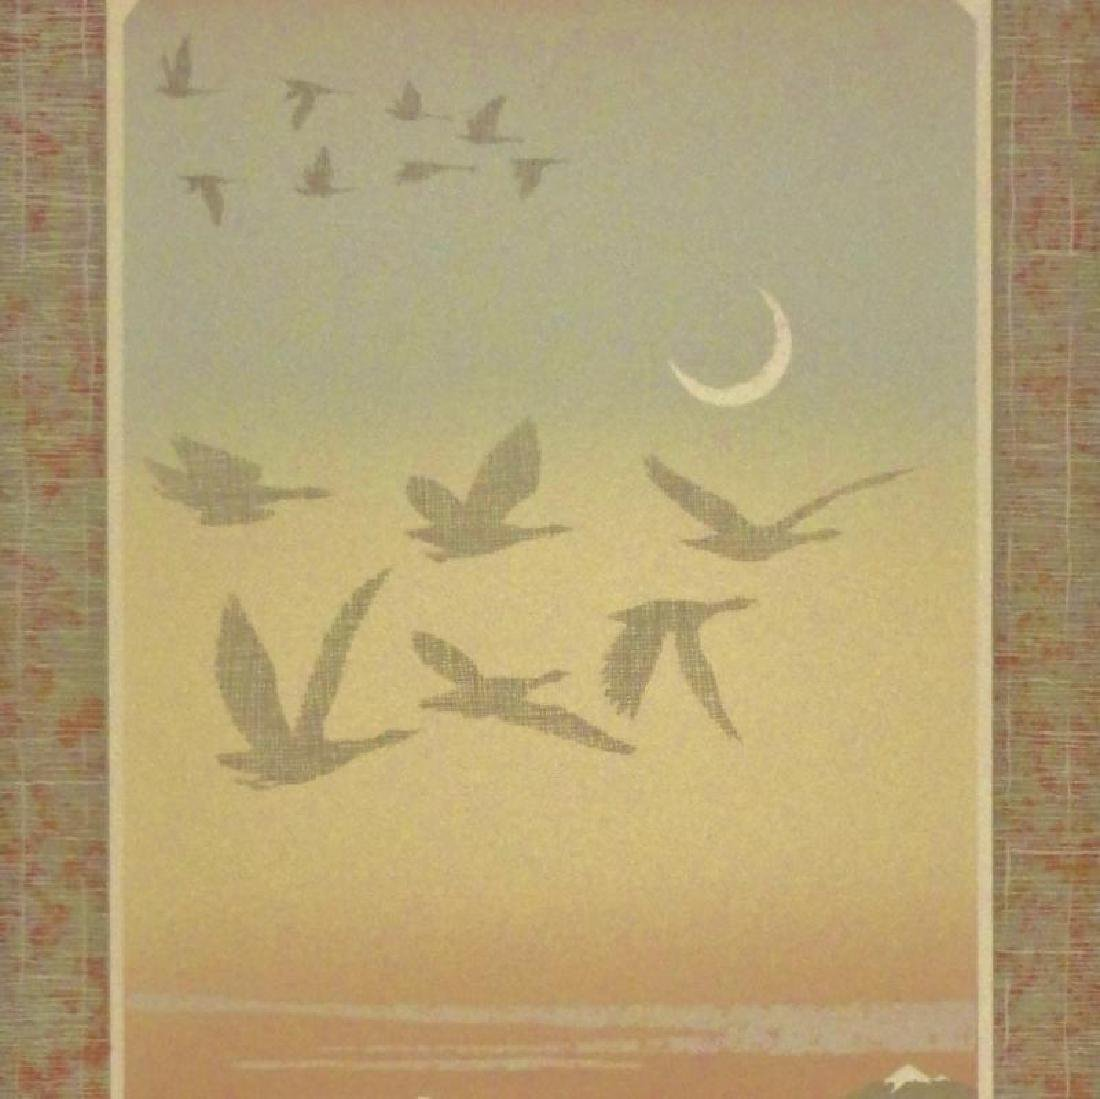 Abstract Mountain Bird Flight Signed Serigraph - 2